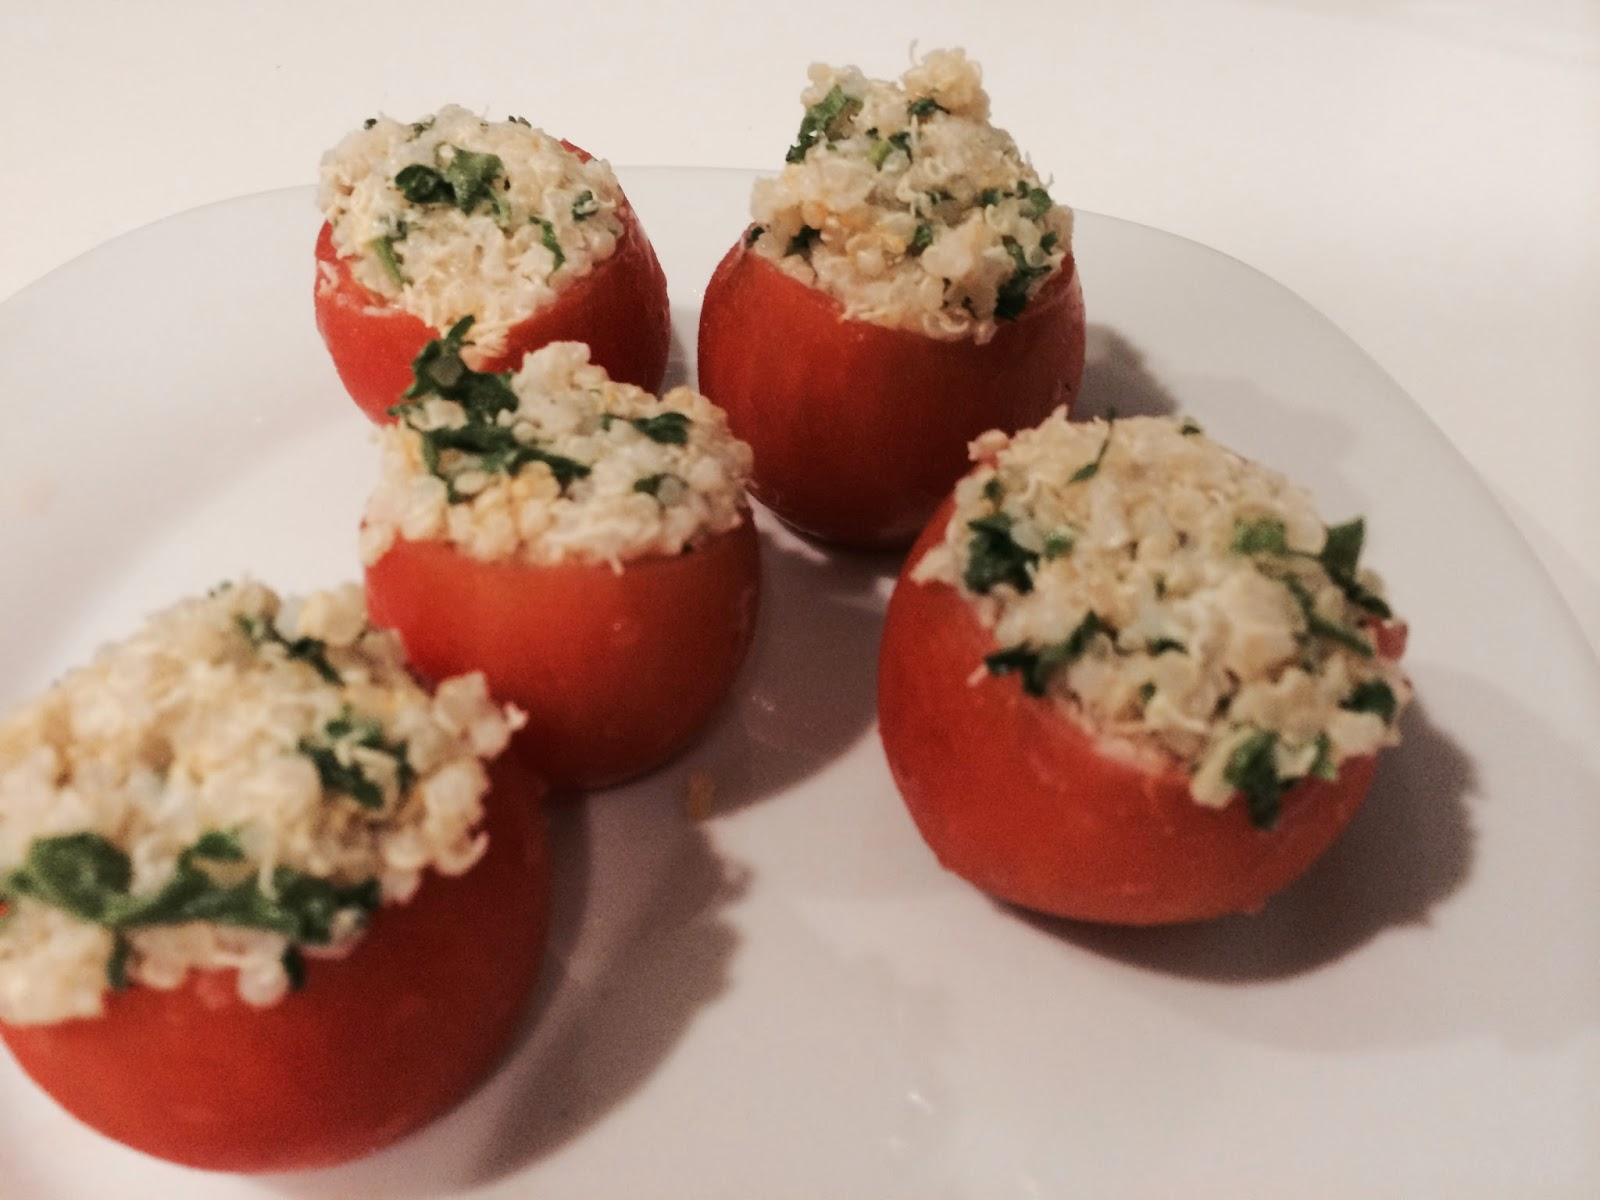 Creamy Goat Cheese Quinoa Stuffed Tomatoes for #SundaySupper